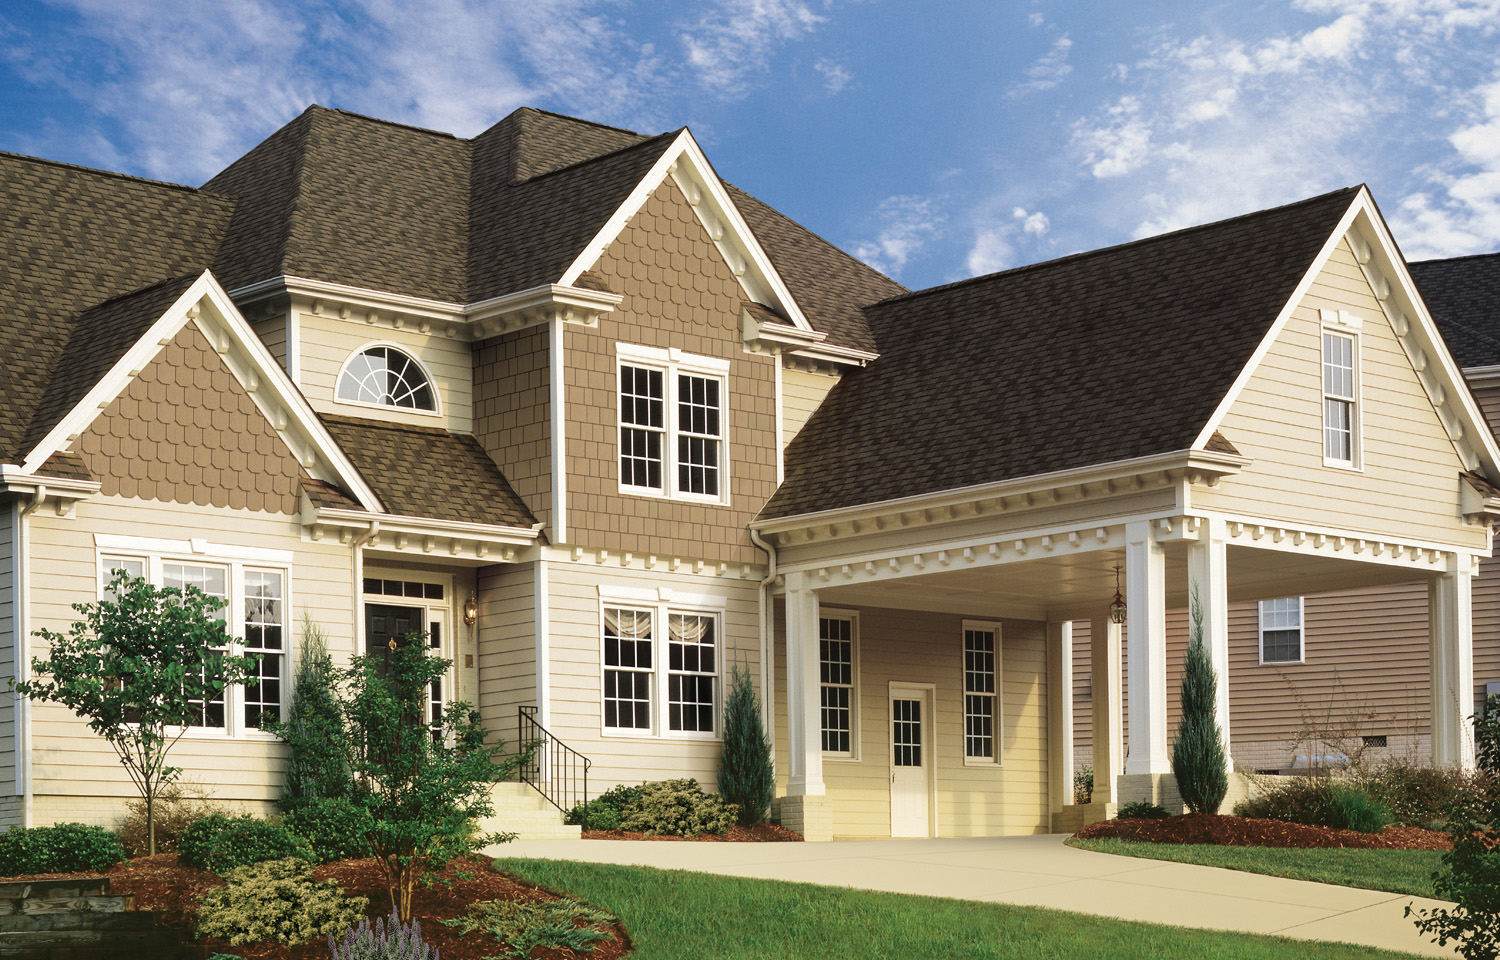 Multiplicity - Types of Exterior House Siding Ideas